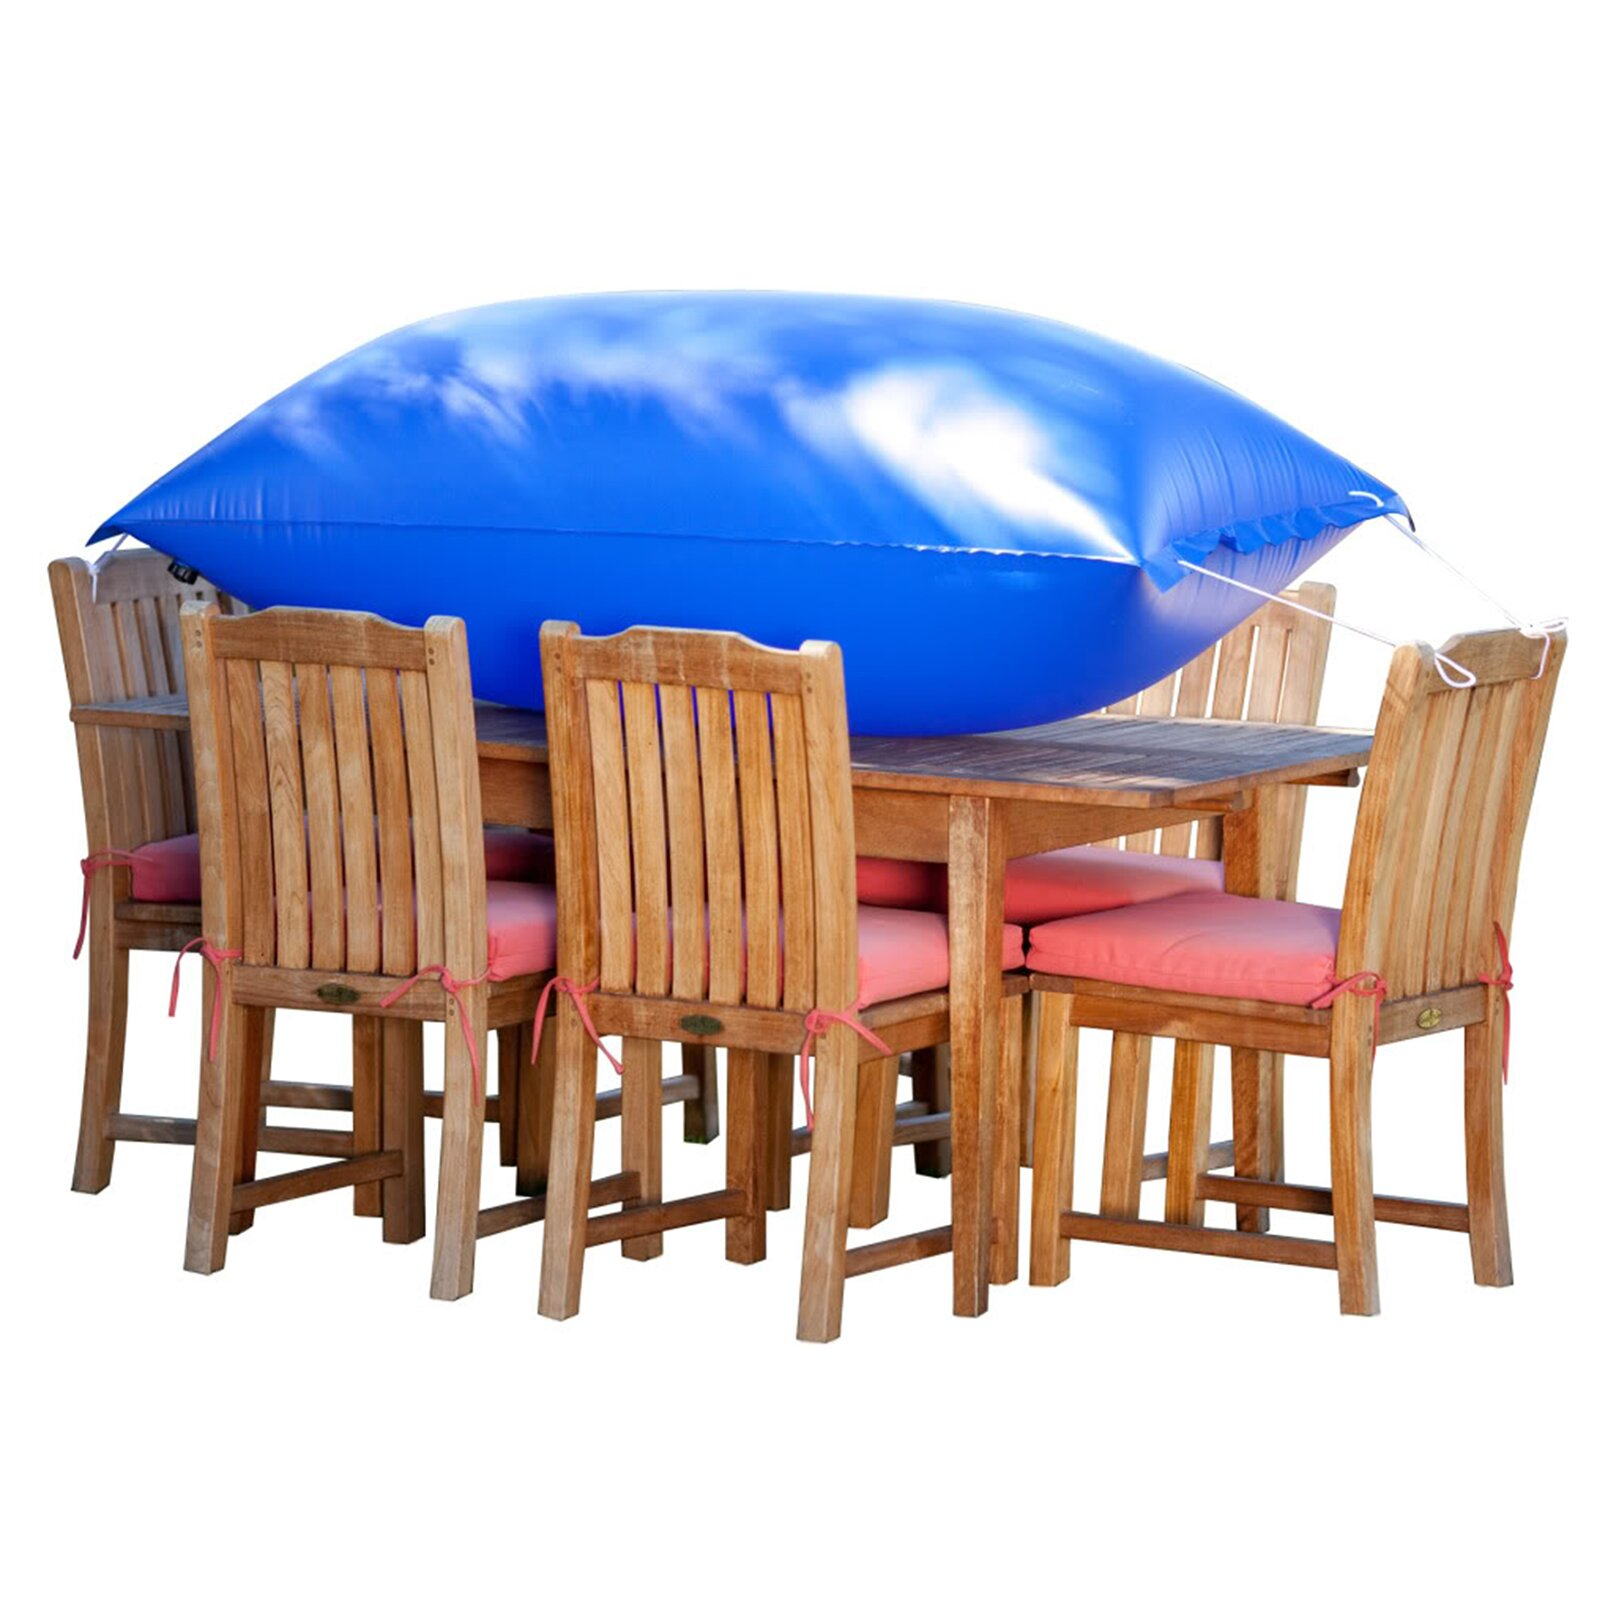 Duck Covers Elite Square Patio Table & Chair Set Cover & Reviews